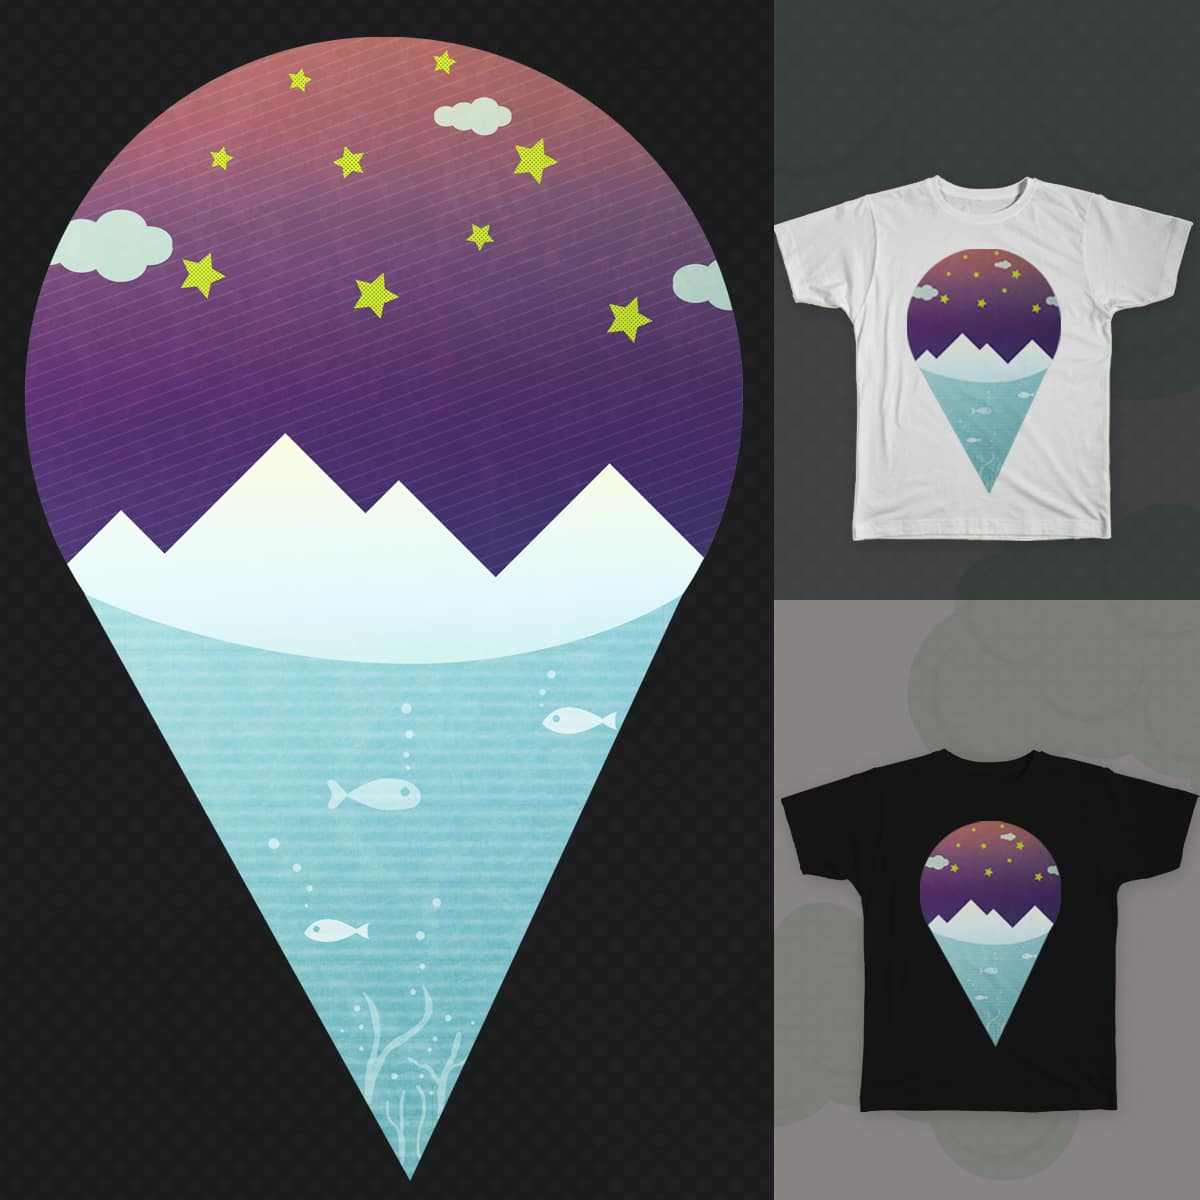 Natural ice cream by Tan Arice on Threadless